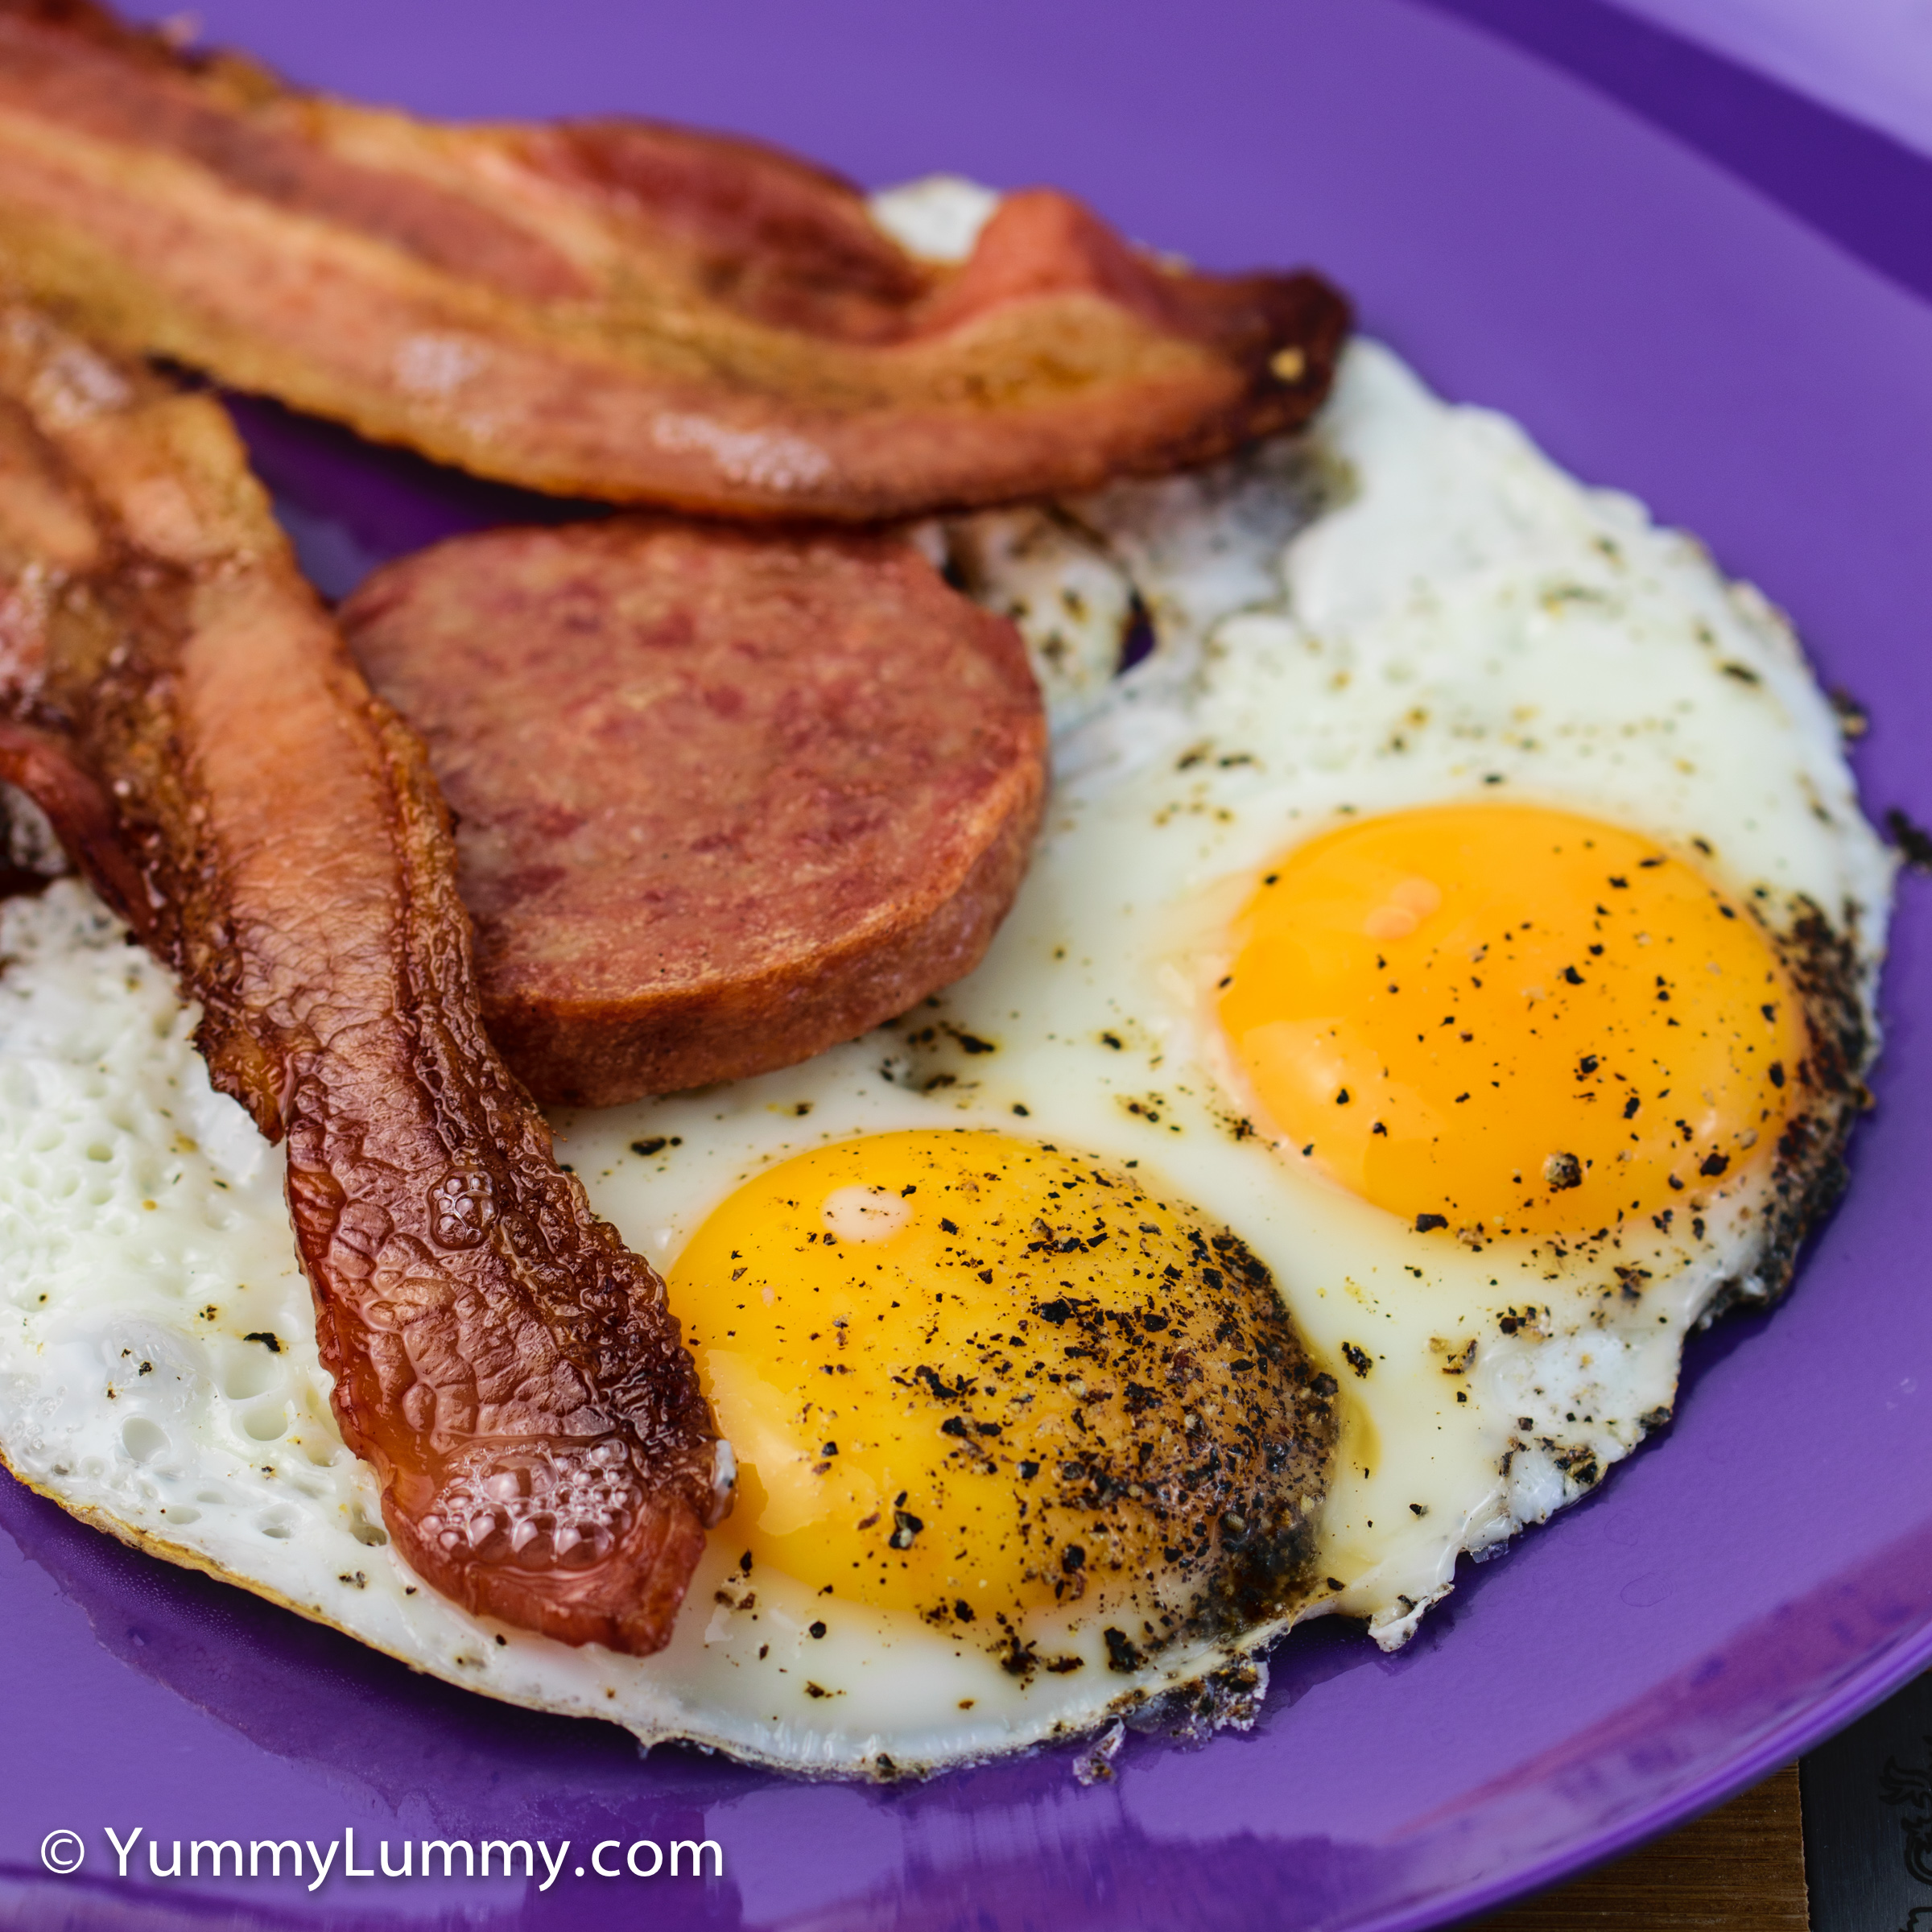 Good morning Tuesday and a cold cold Canberra day. My breakfast is Bacon and eggs with Strasburg sausage.